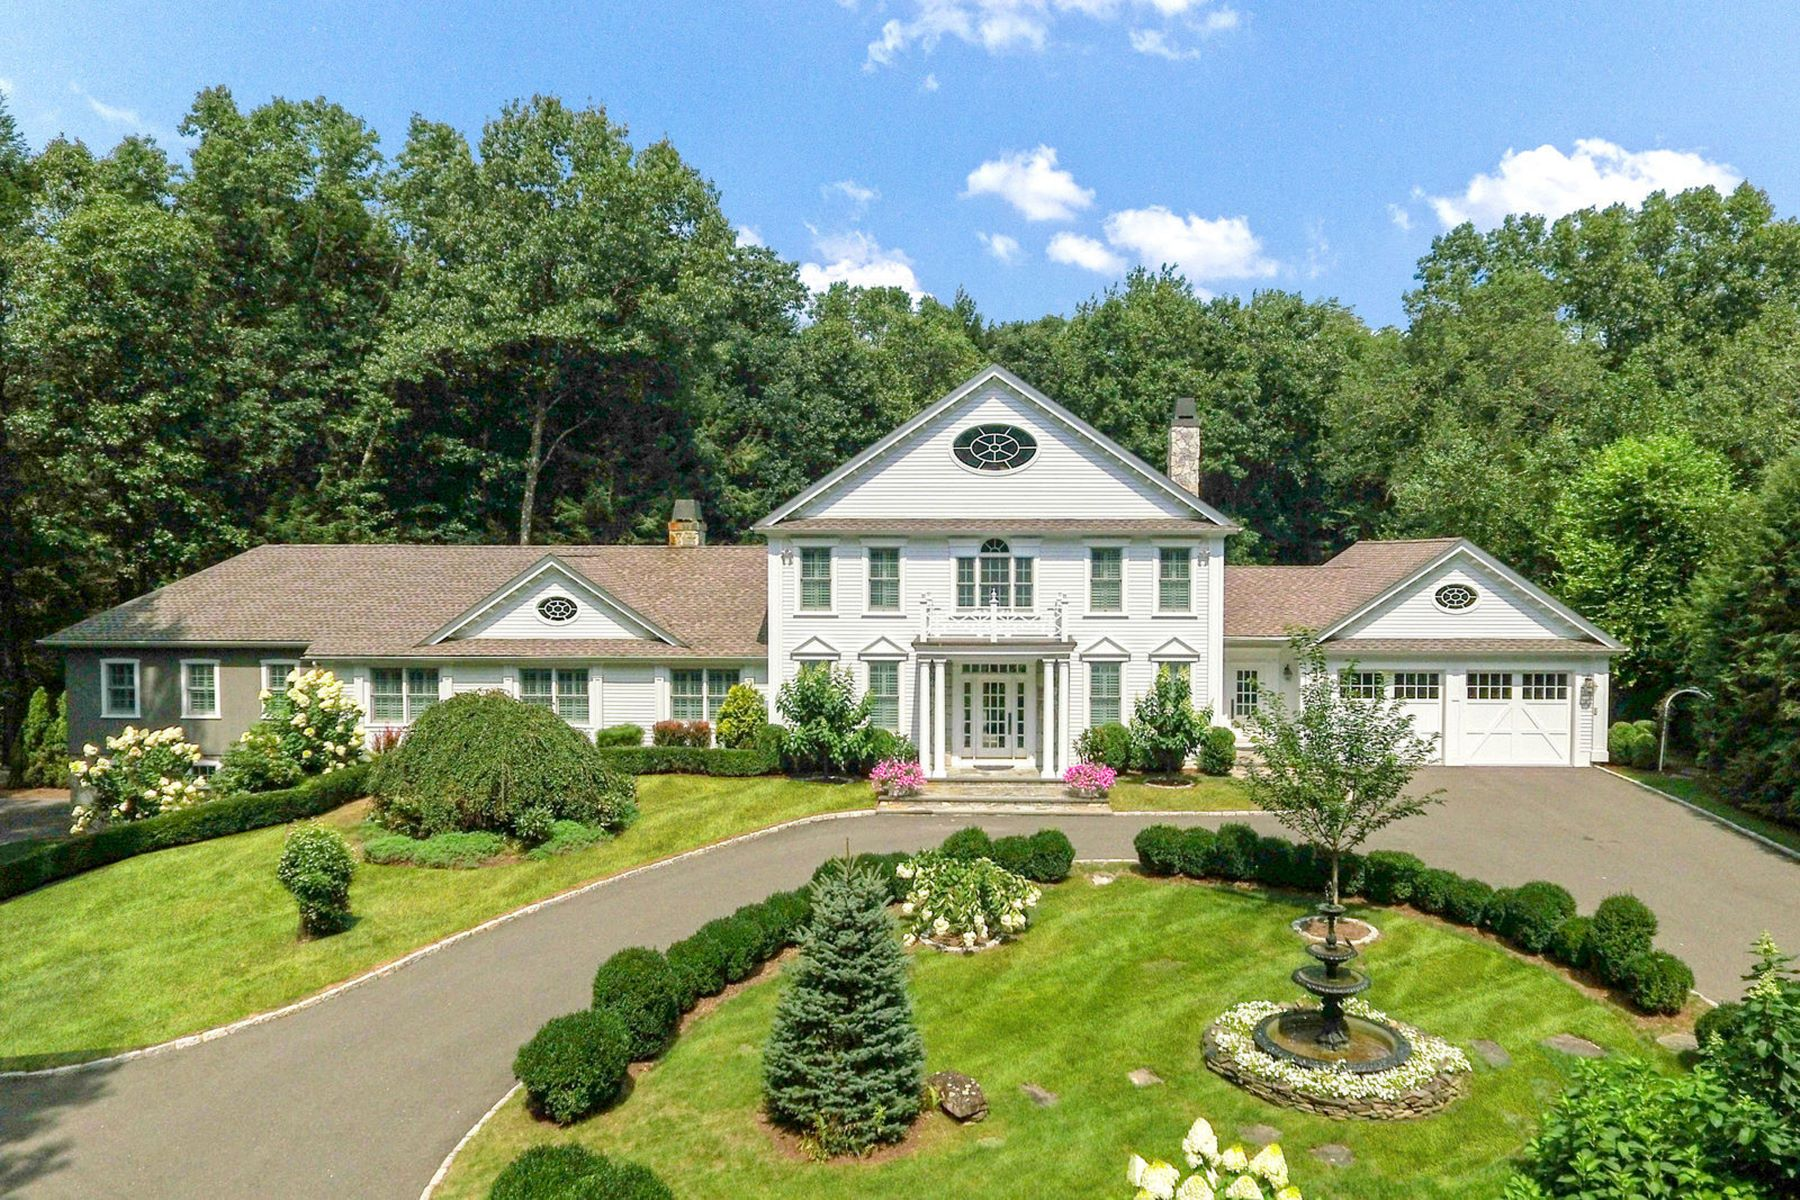 Single Family Homes for Sale at Elegant Colonial in Private Setting 18 Minor Bridge Road Roxbury, Connecticut 06783 United States